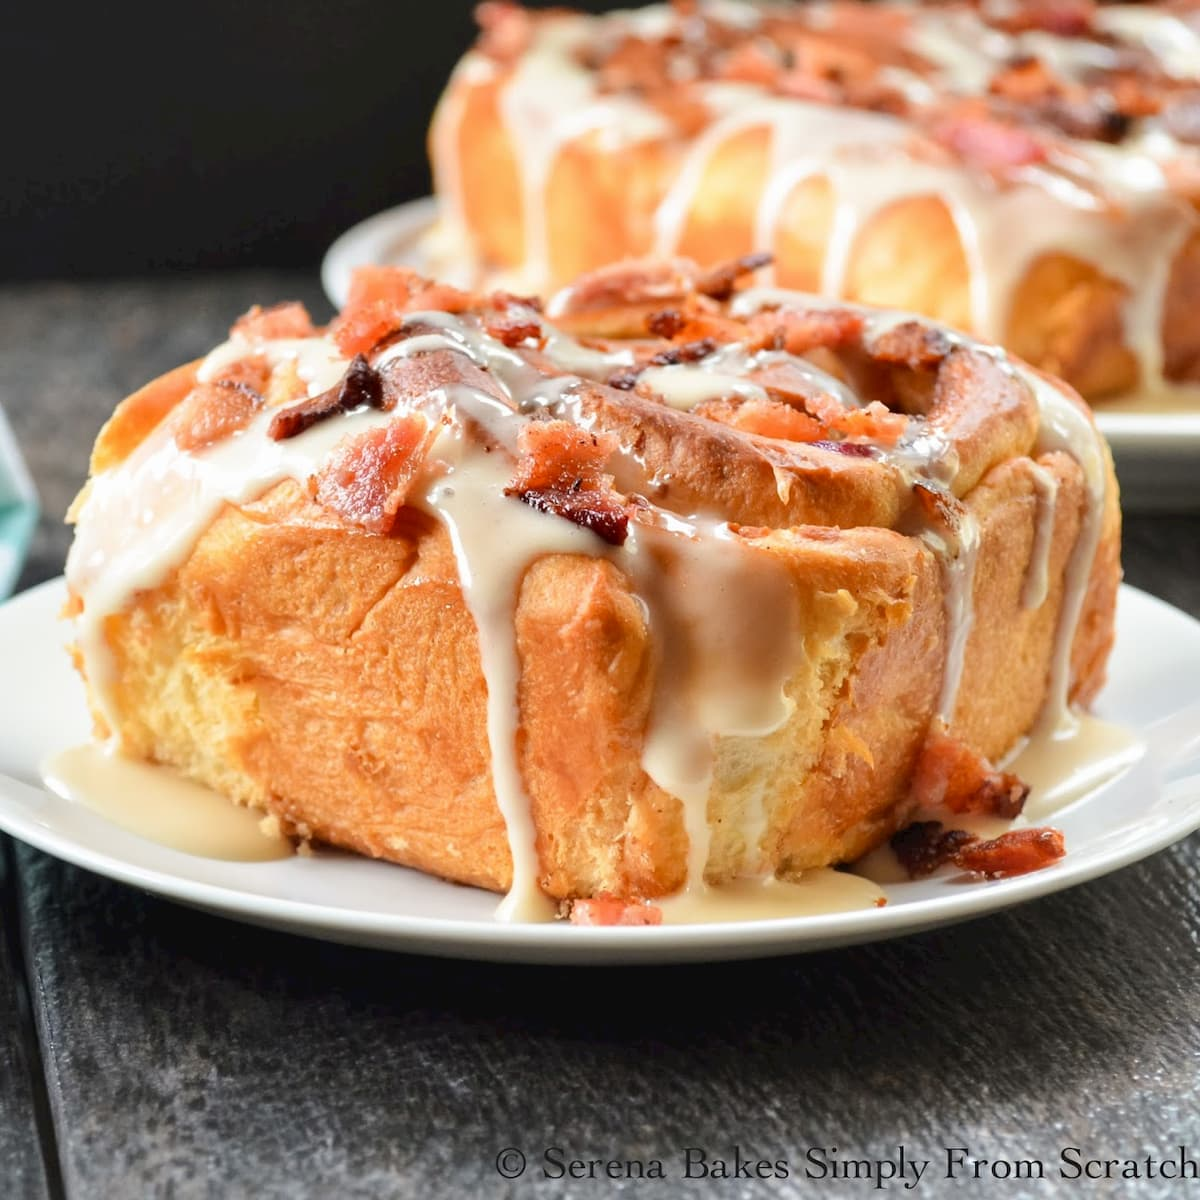 Blueberry Bacon Cinnamon Rolls drizzled with Maple Glaze and topped with bacon on a white plate.